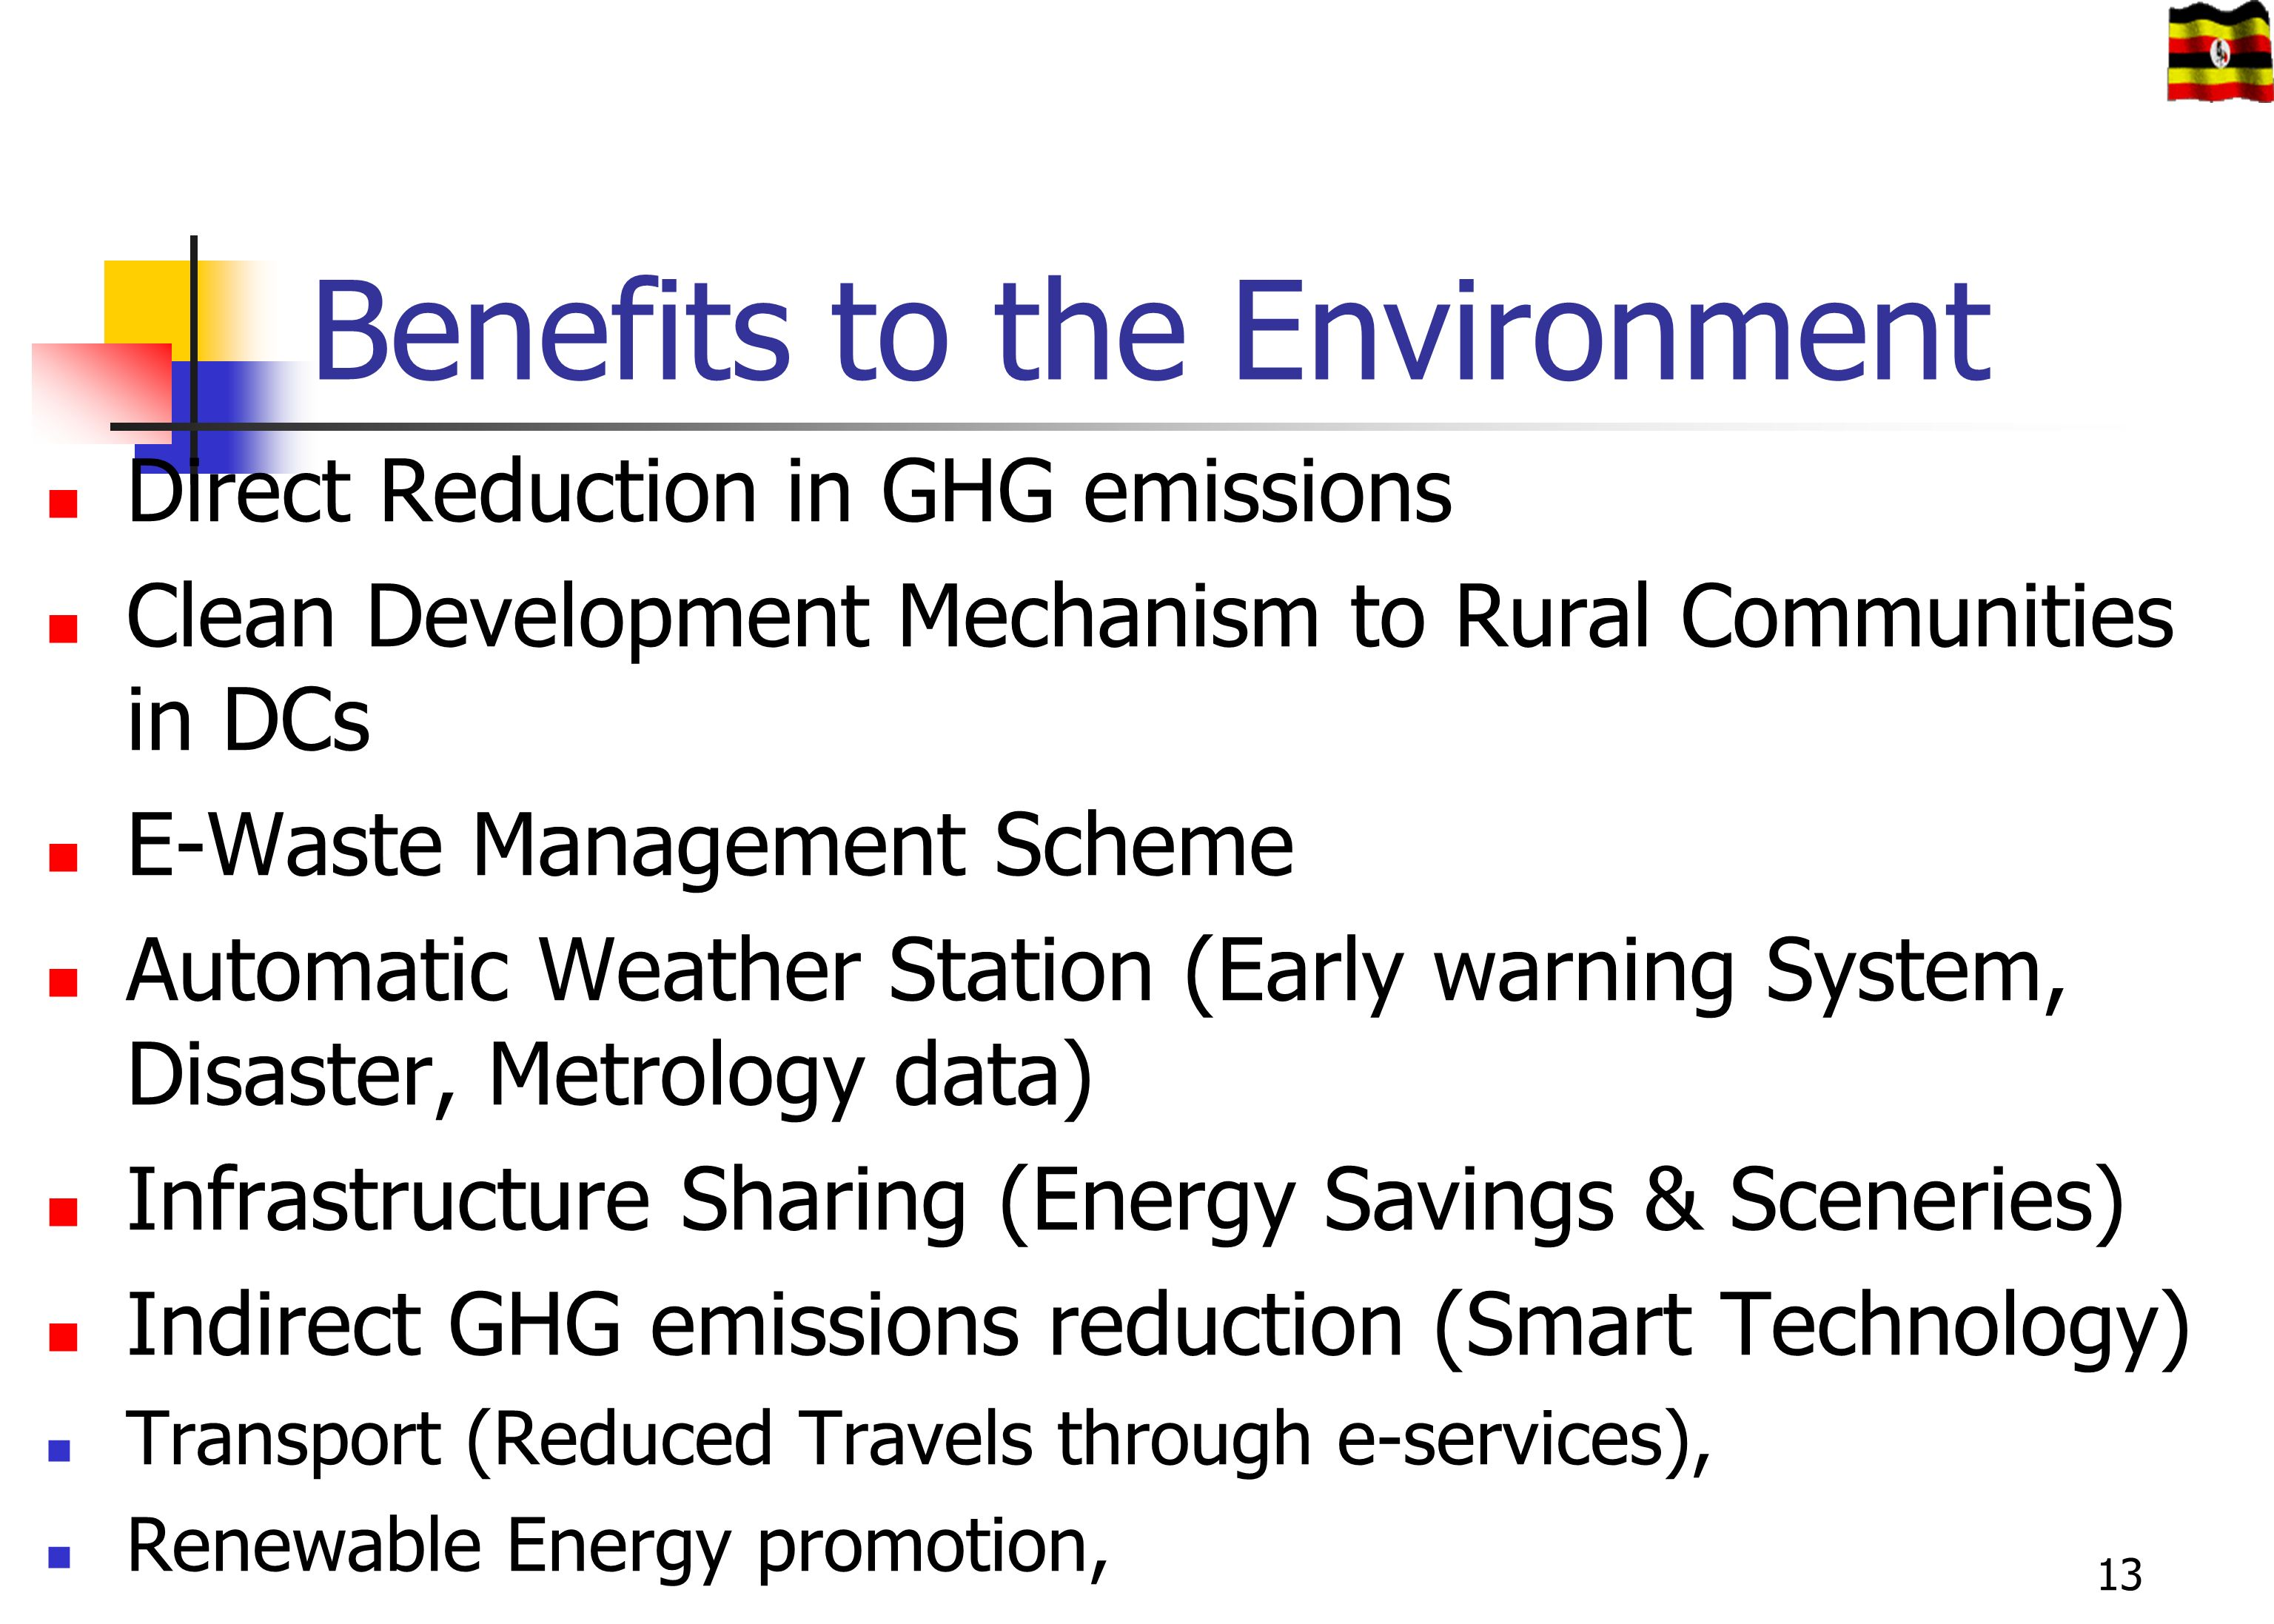 Benefits to the Environment